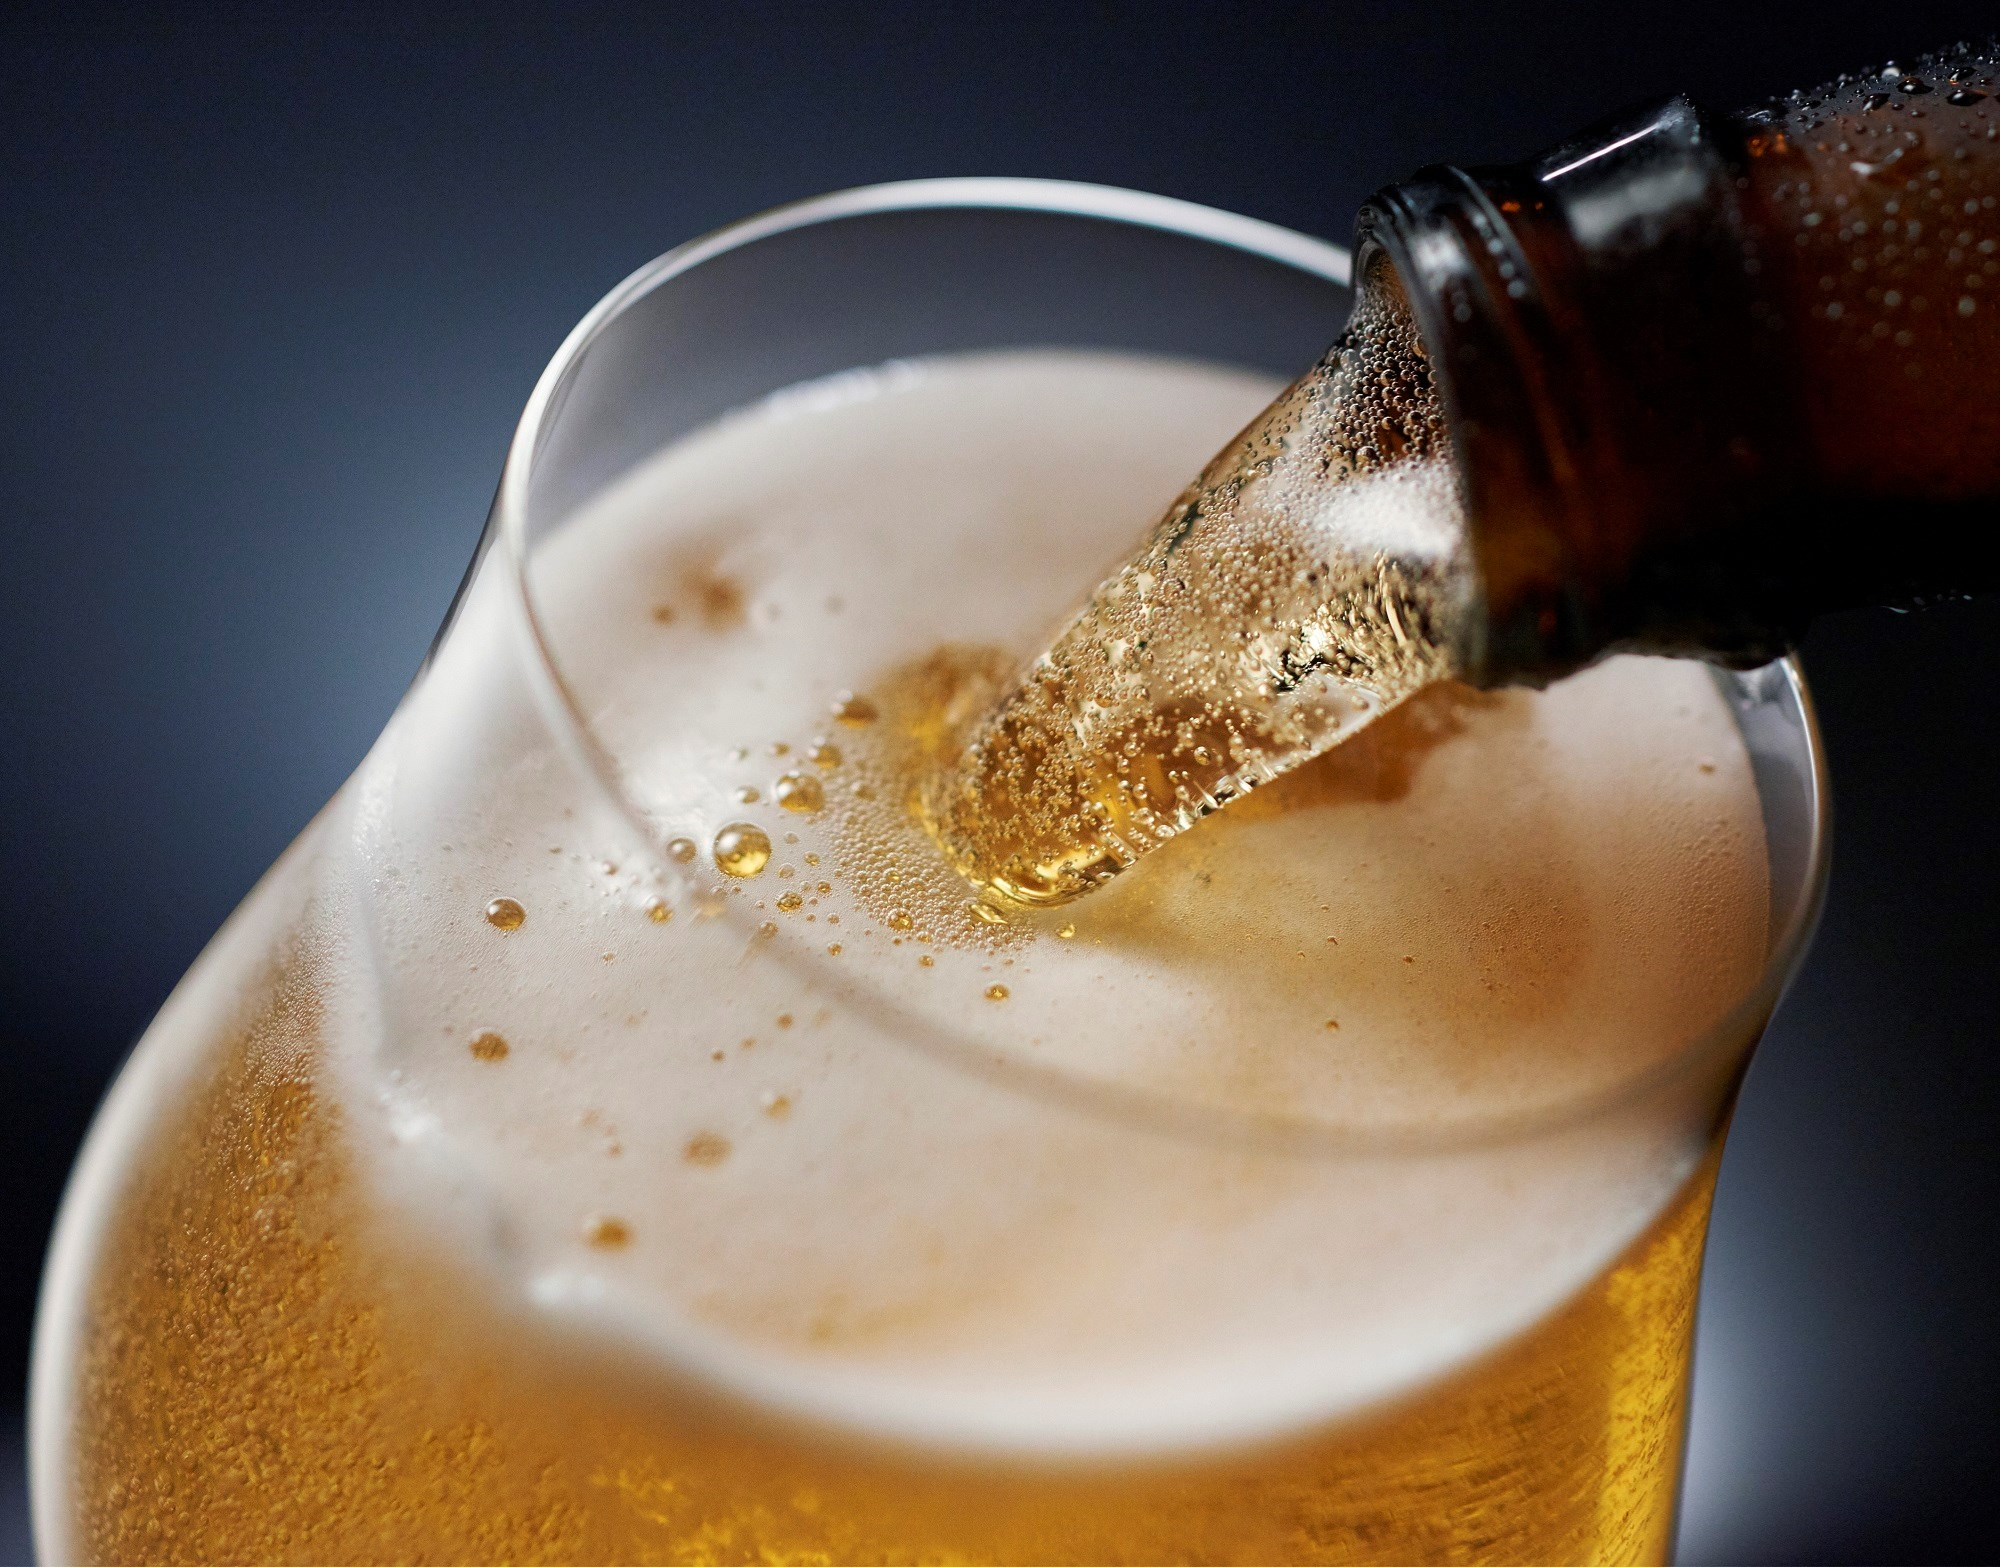 Abstinence in midlife and consumption of more than 14 units of alcohol per week are associated with increased risk of dementia.